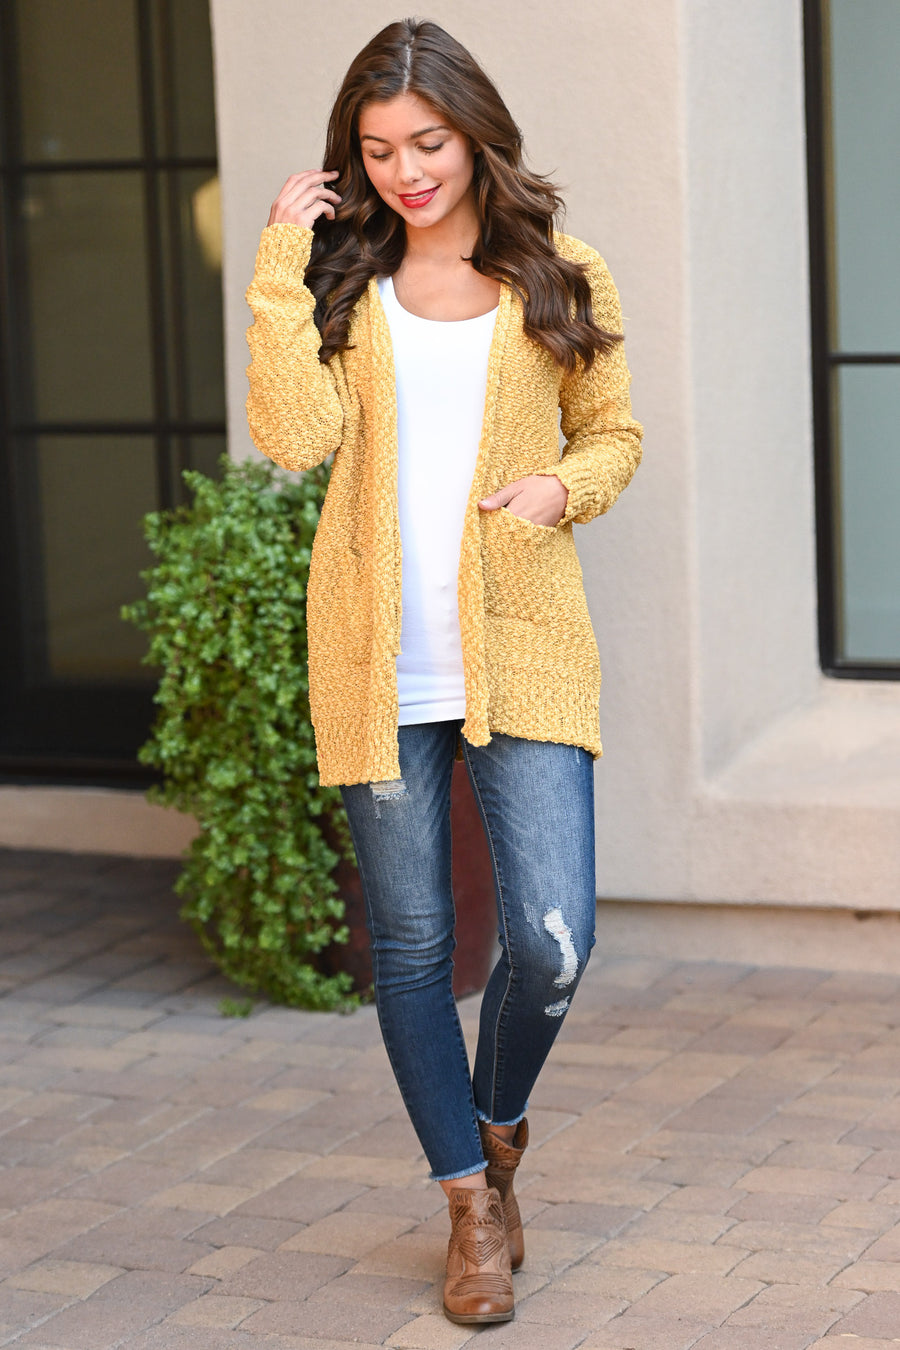 Time To Chill Knit Cardigan - Mustard cozy knit open-front sweater, closet candy boutique 1